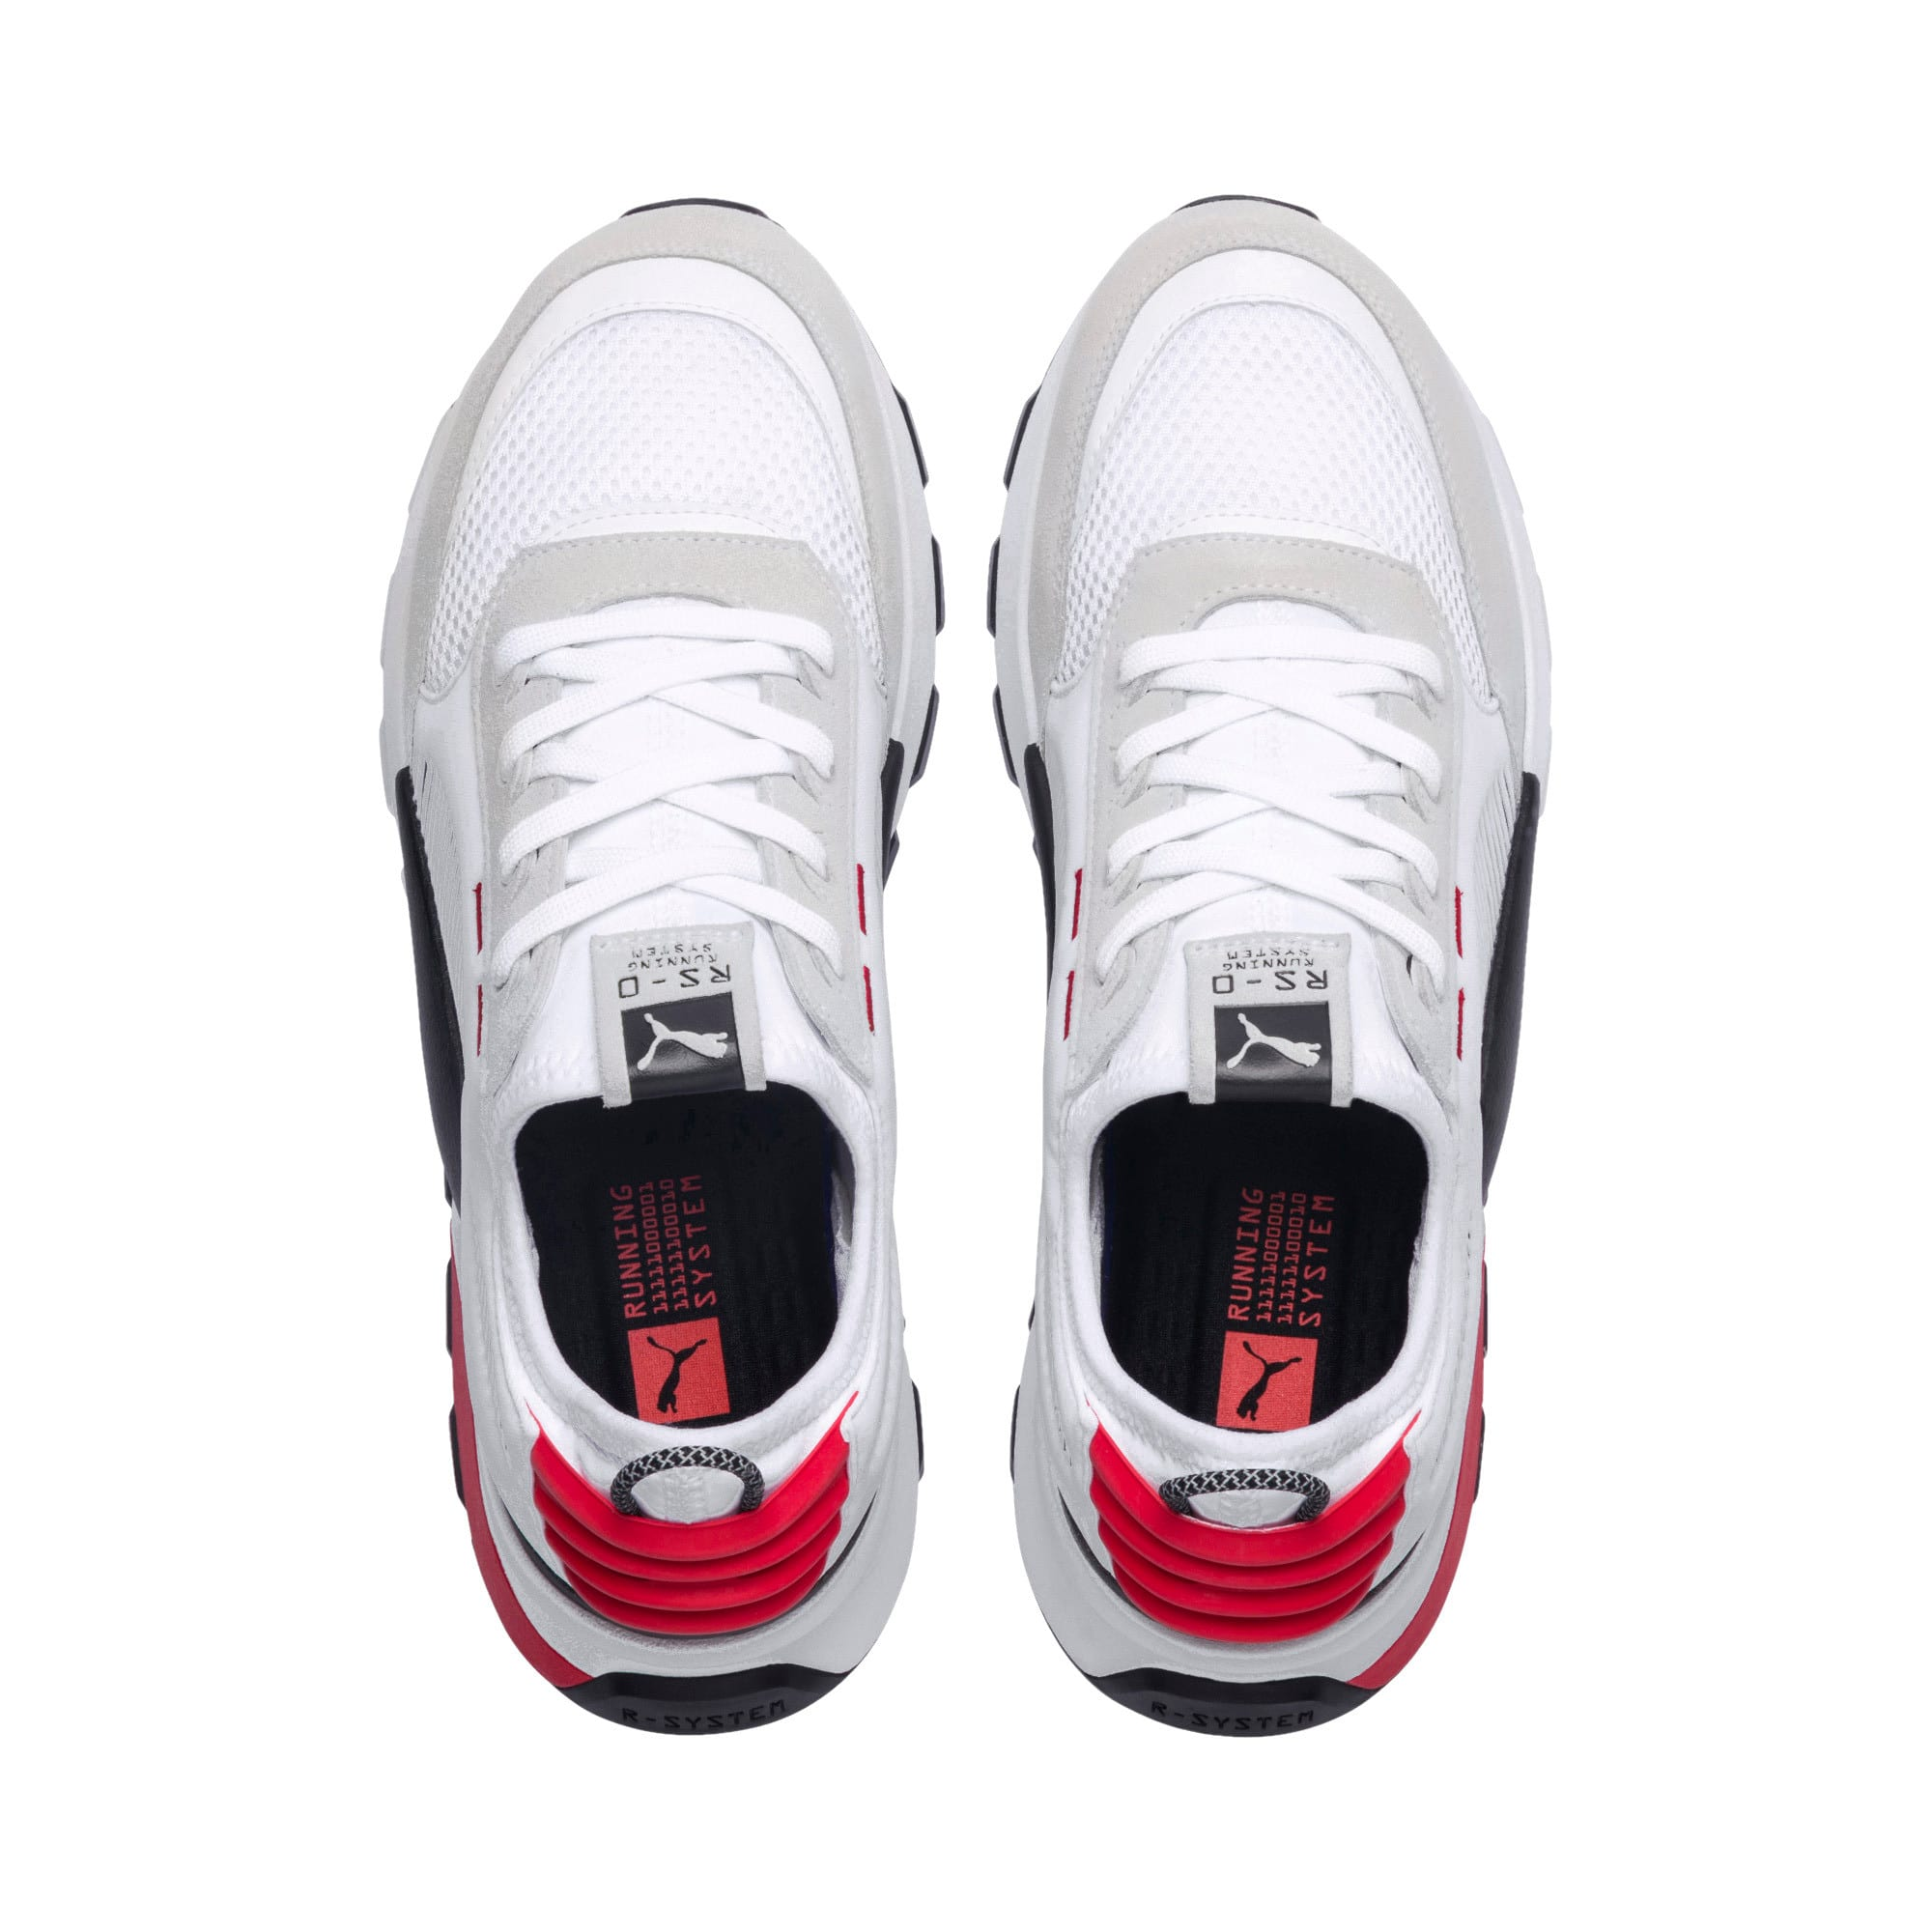 Thumbnail 8 of RS-O Winter Inj Toys Men's Sneakers, Puma White-High Risk Red, medium